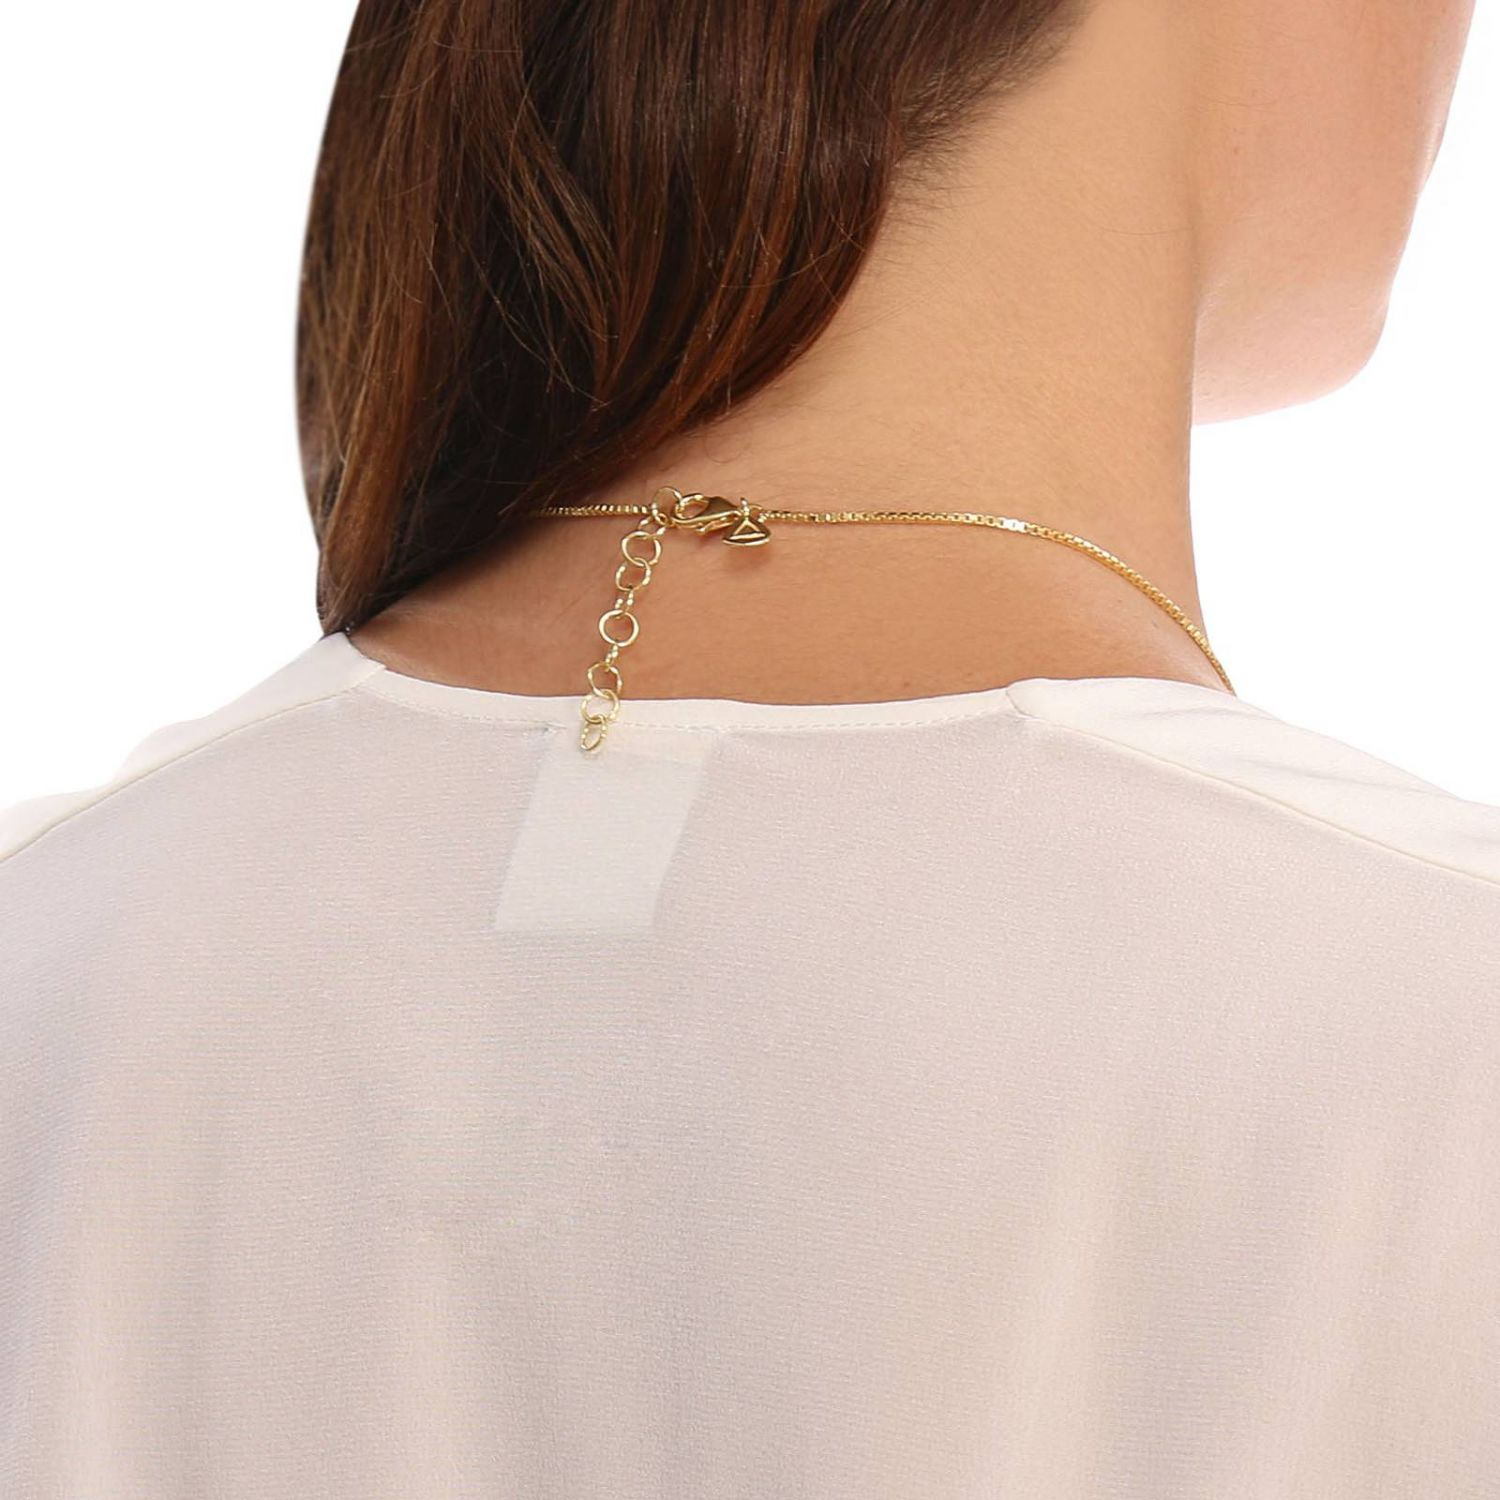 Collana Big clepsydra pendant in argento 925 Linear Collection oro 3